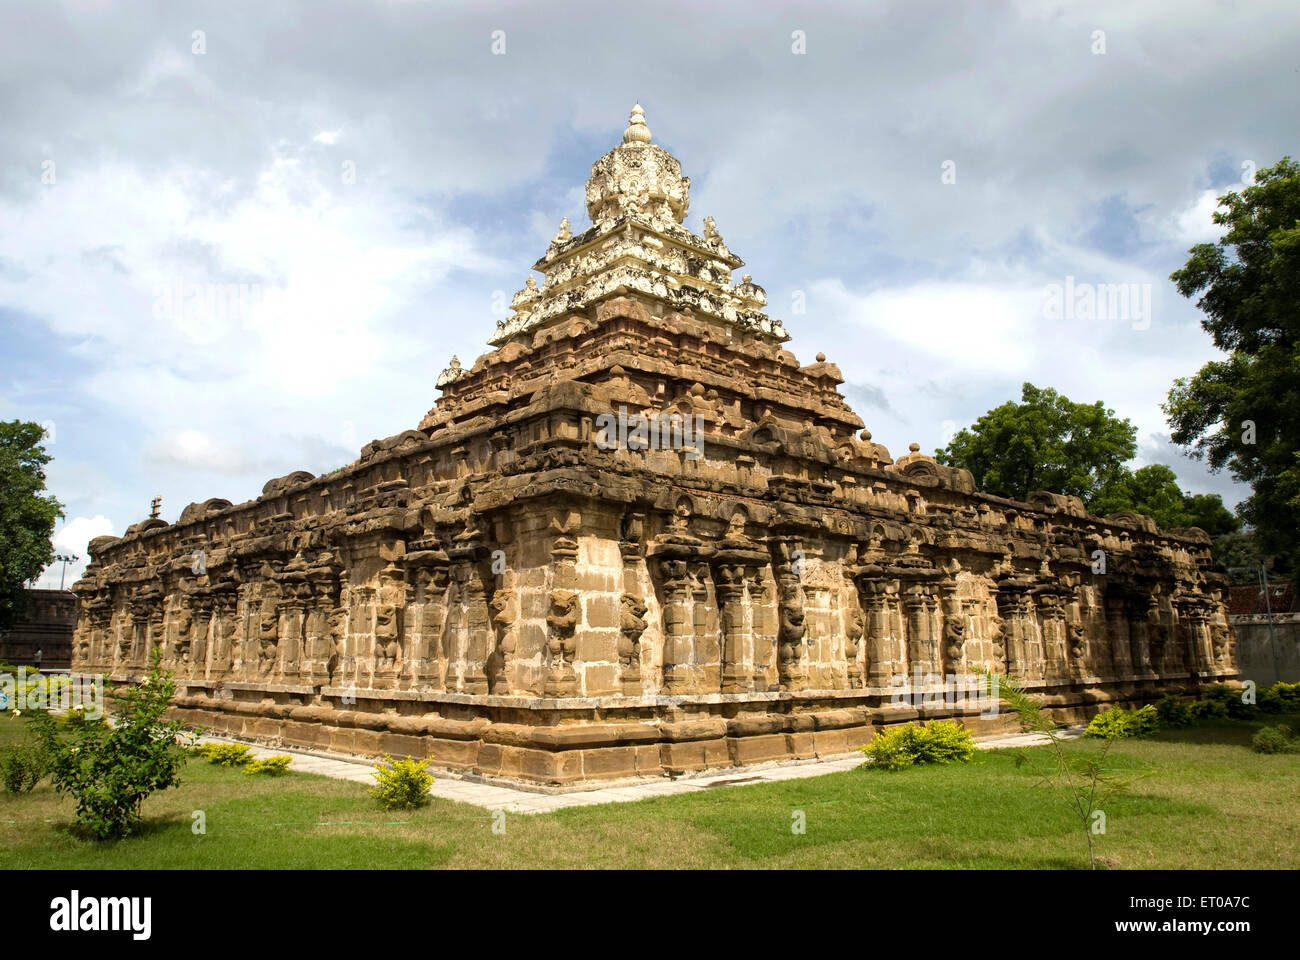 Nandivarman High Resolution Stock Photography and Images - Alamy